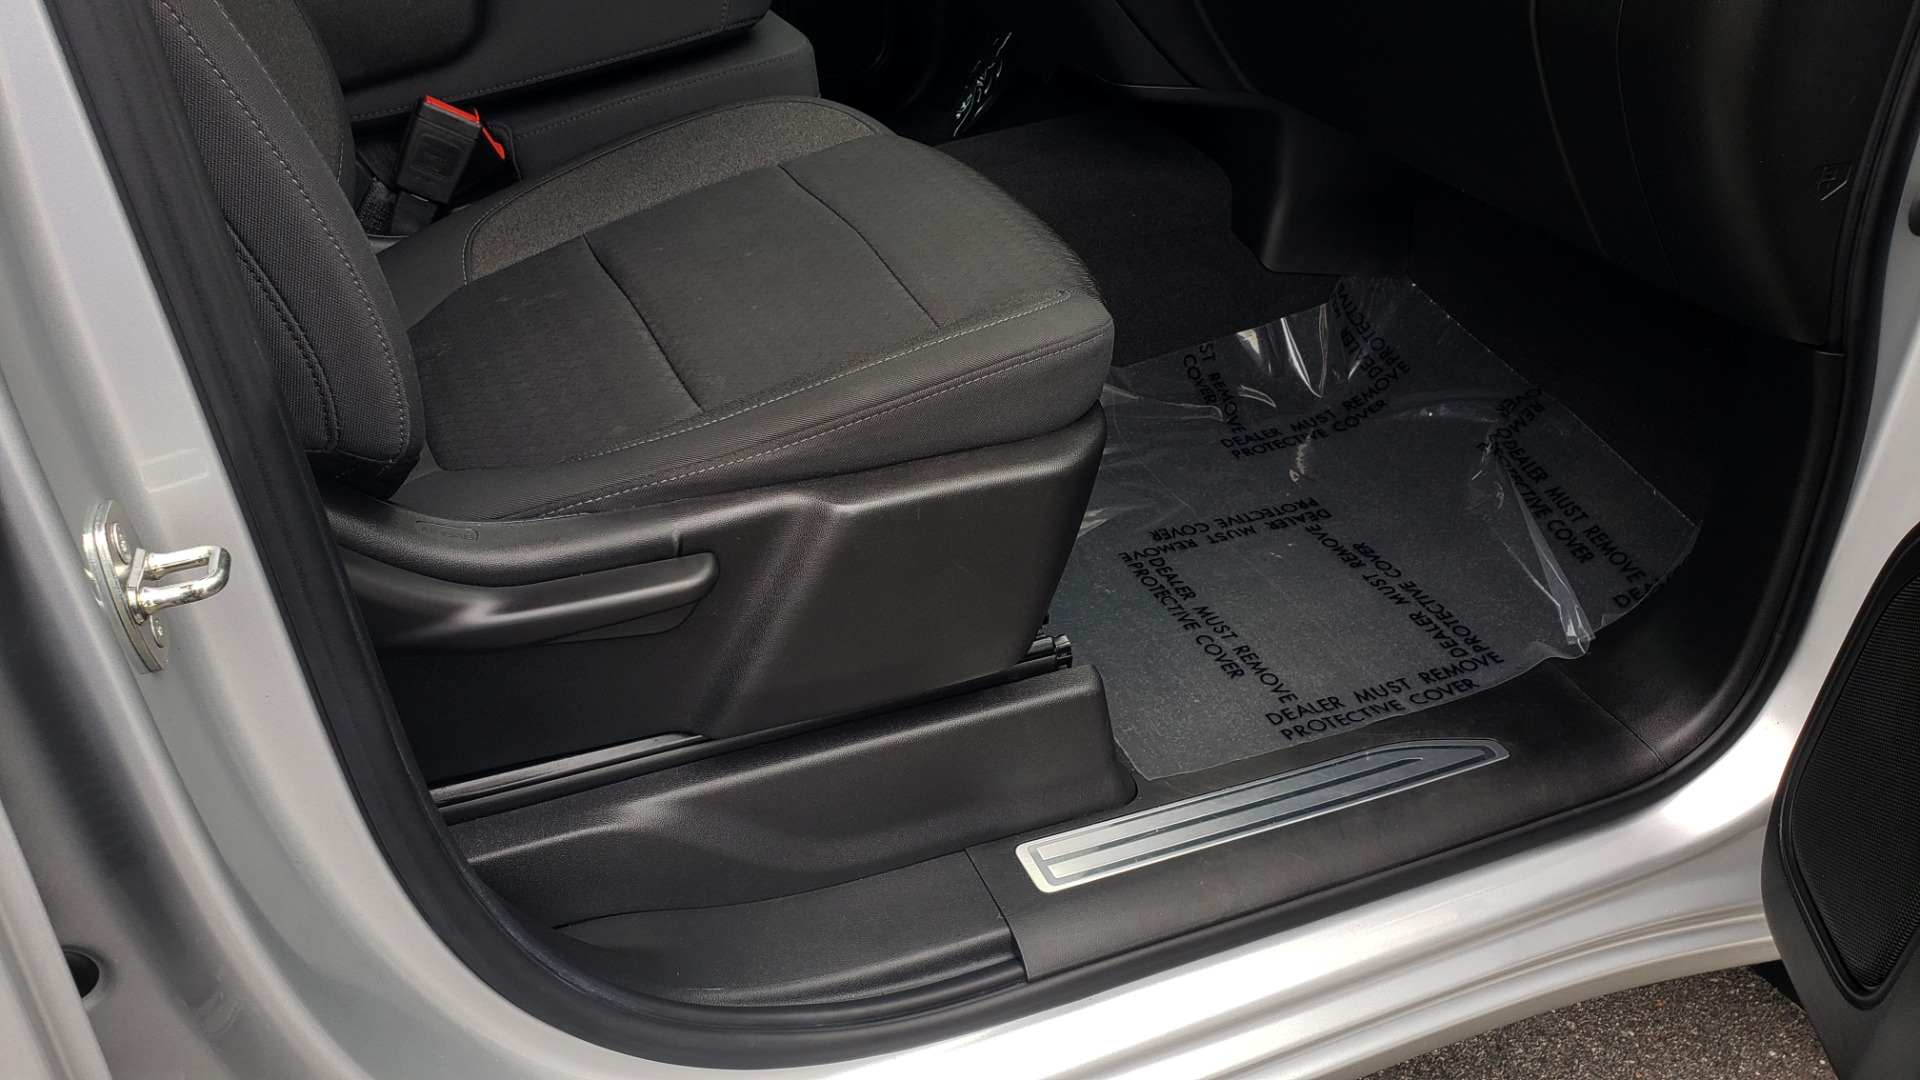 Used 2020 Chevrolet SILVERADO 1500 LT 4WD DOUBLECAB 147 WB / 5.3L V8 / BEDLINER / REARVIEW for sale $41,995 at Formula Imports in Charlotte NC 28227 59